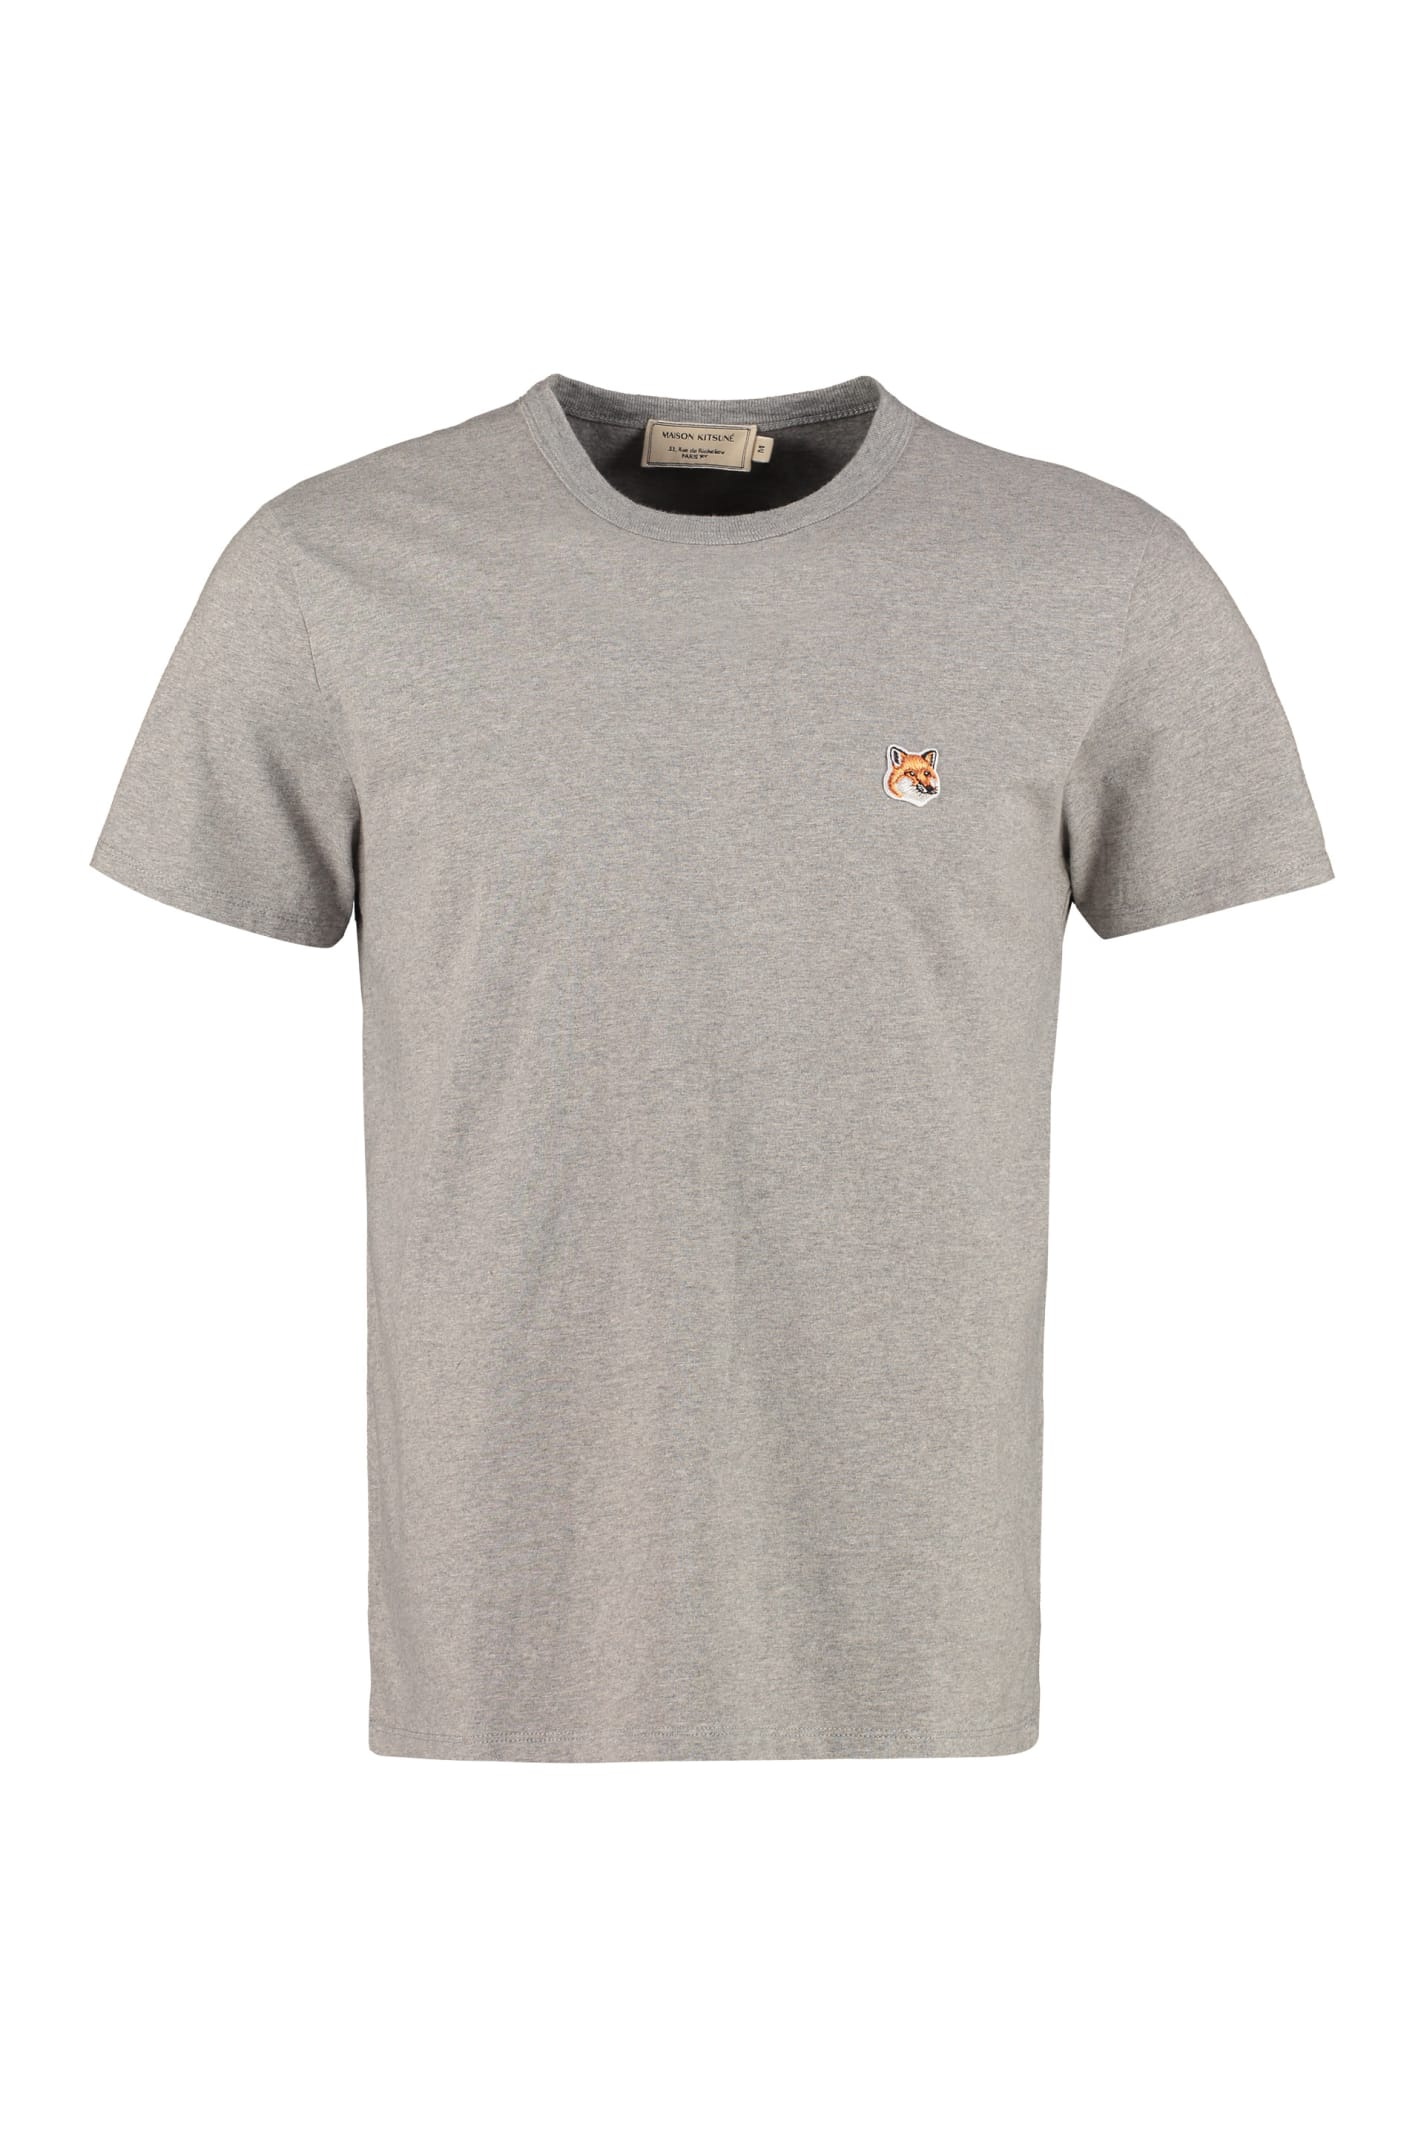 Maison Kitsuné T-shirts CREW-NECK COTTON T-SHIRT